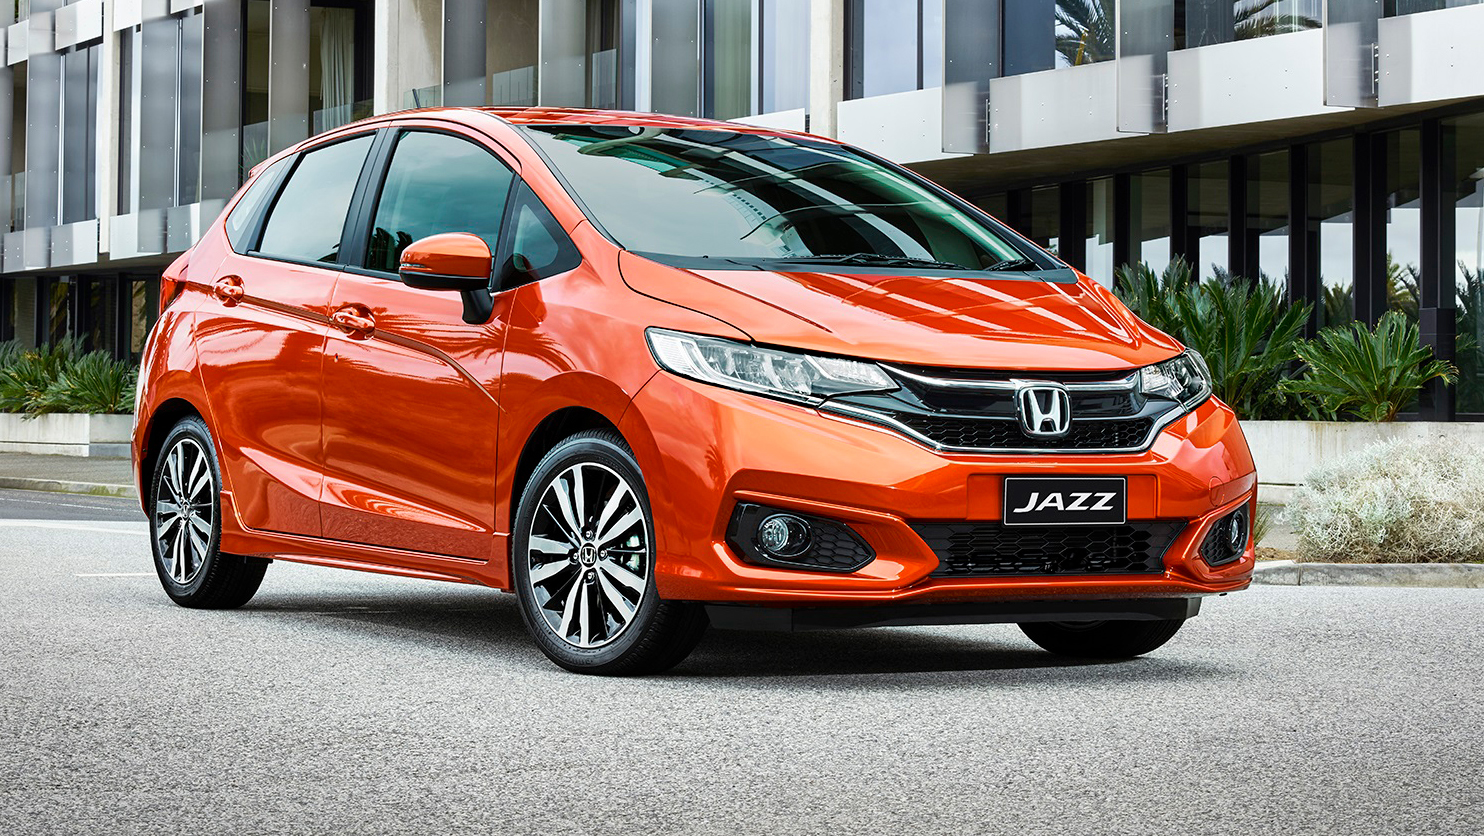 2018 Honda Jazz pricing and specs: Updated styling, more ...